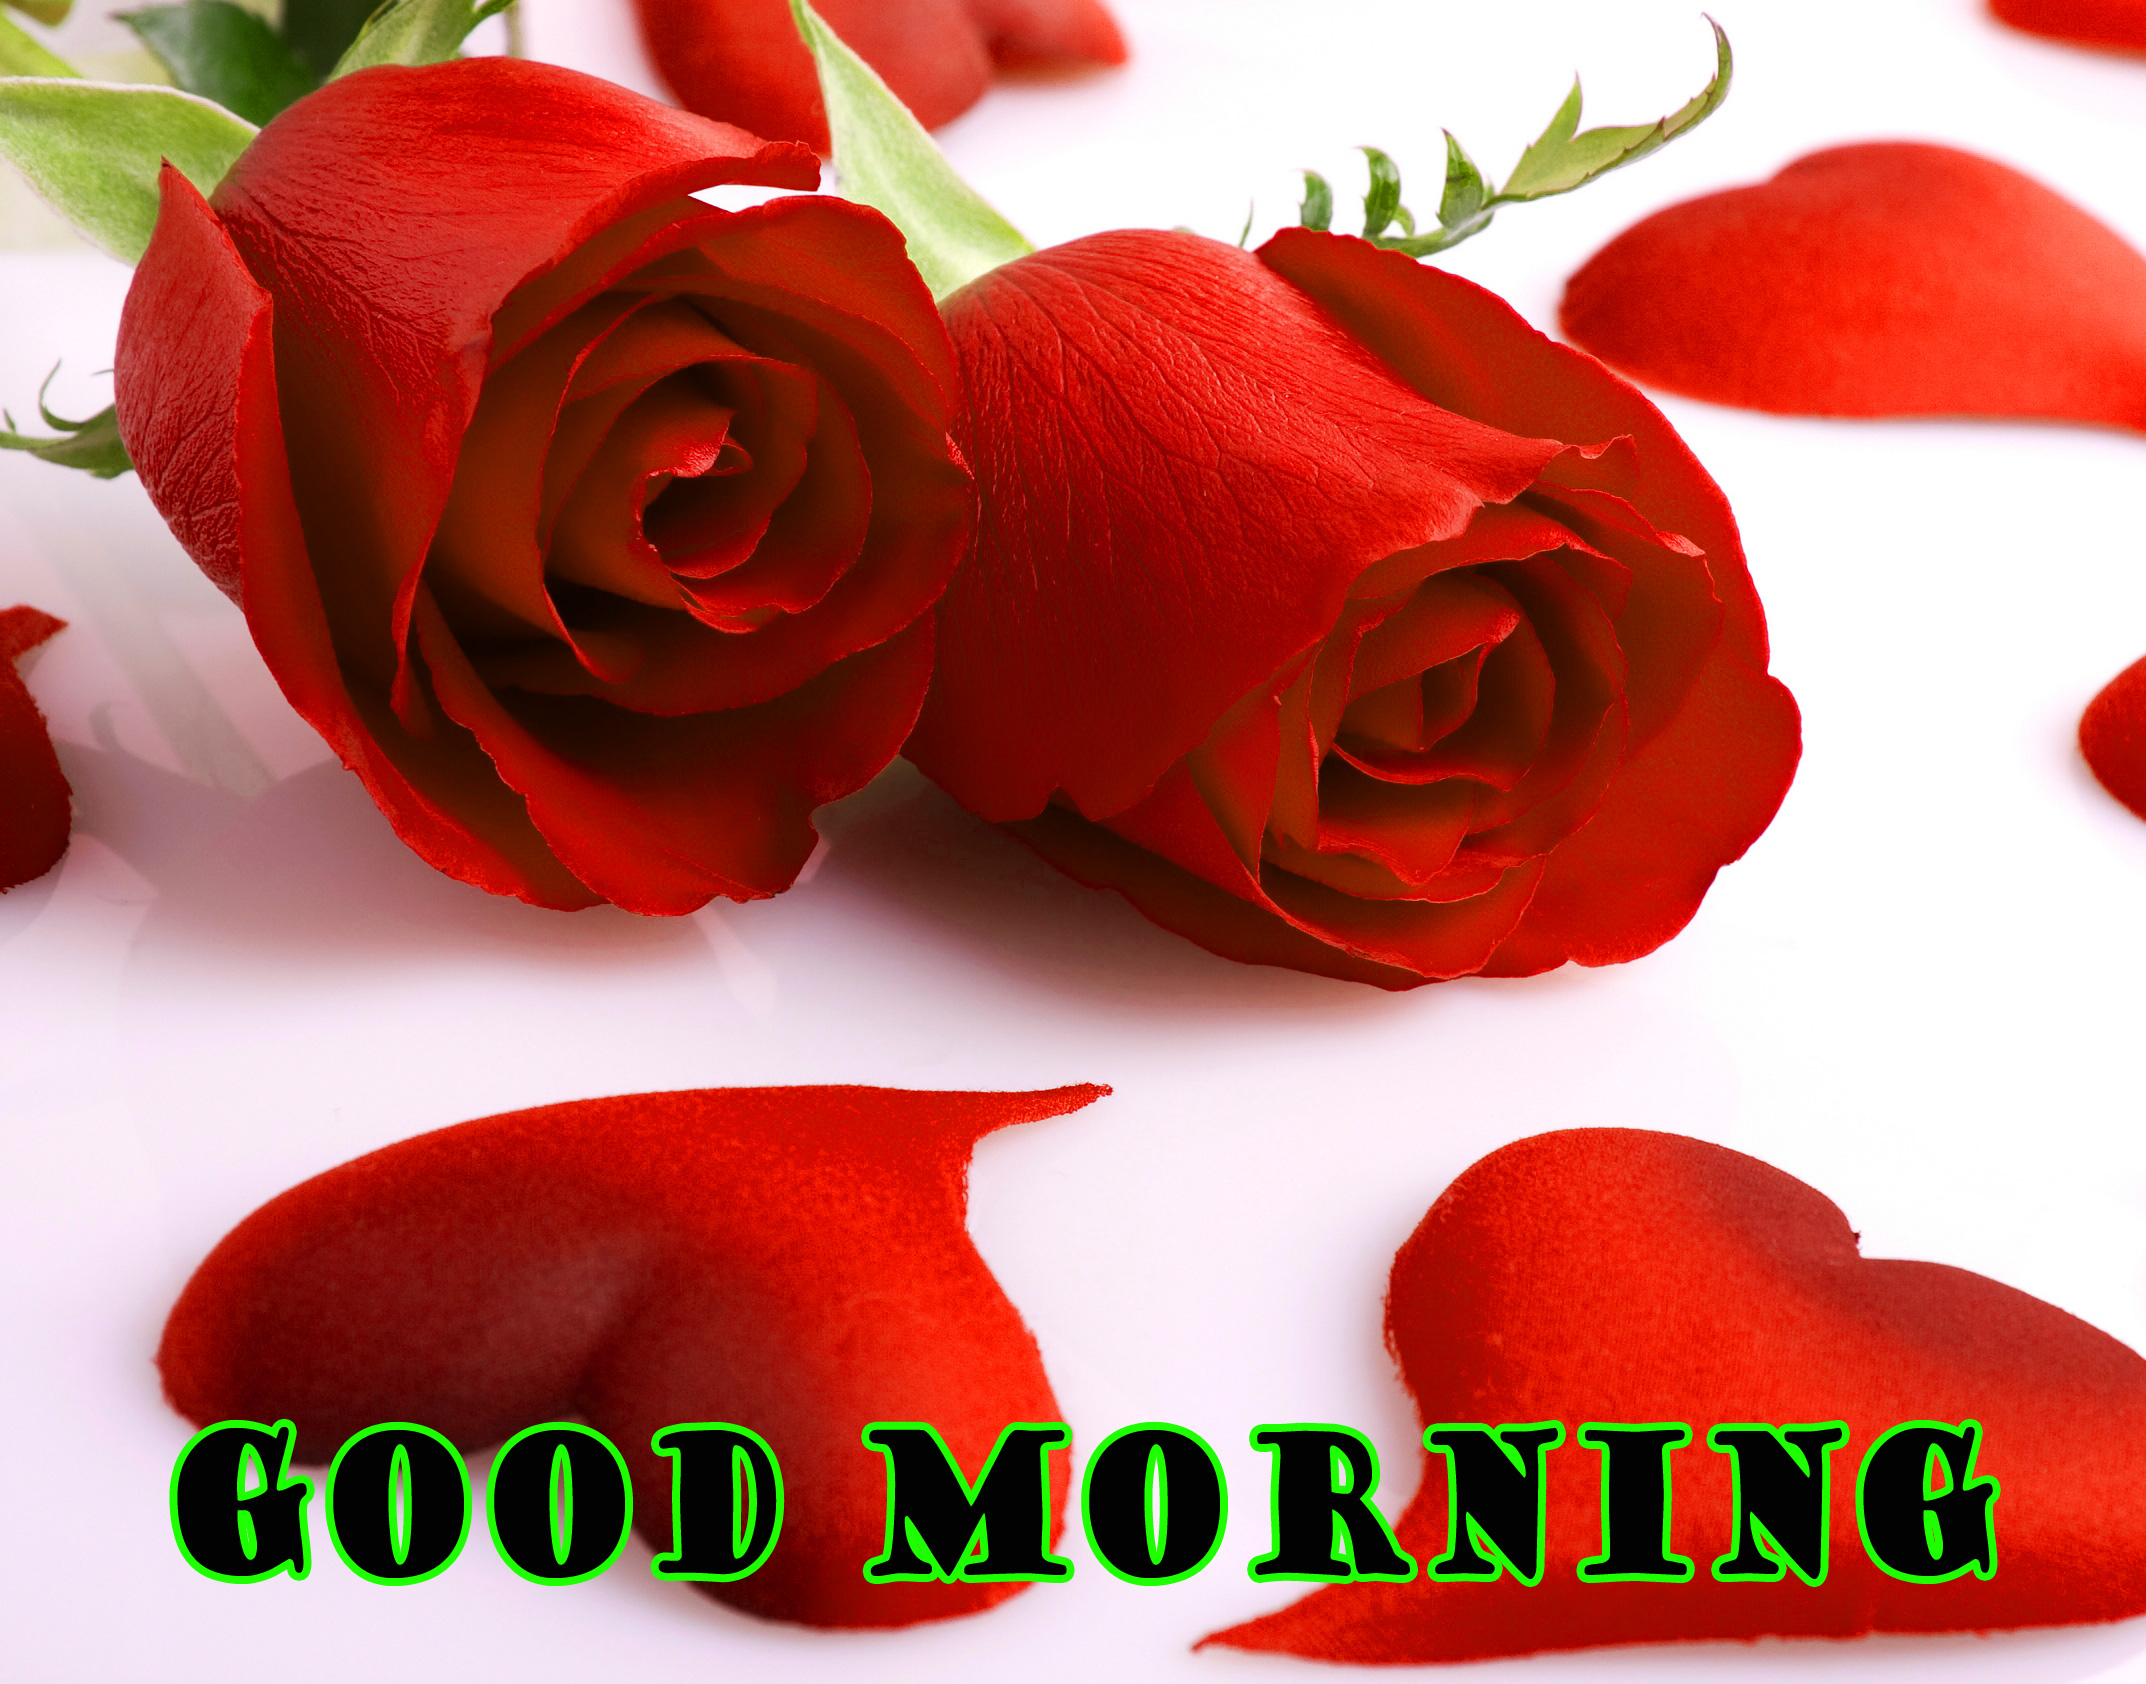 Good Morning Red Rose Pictures Images Photo Free HD Download